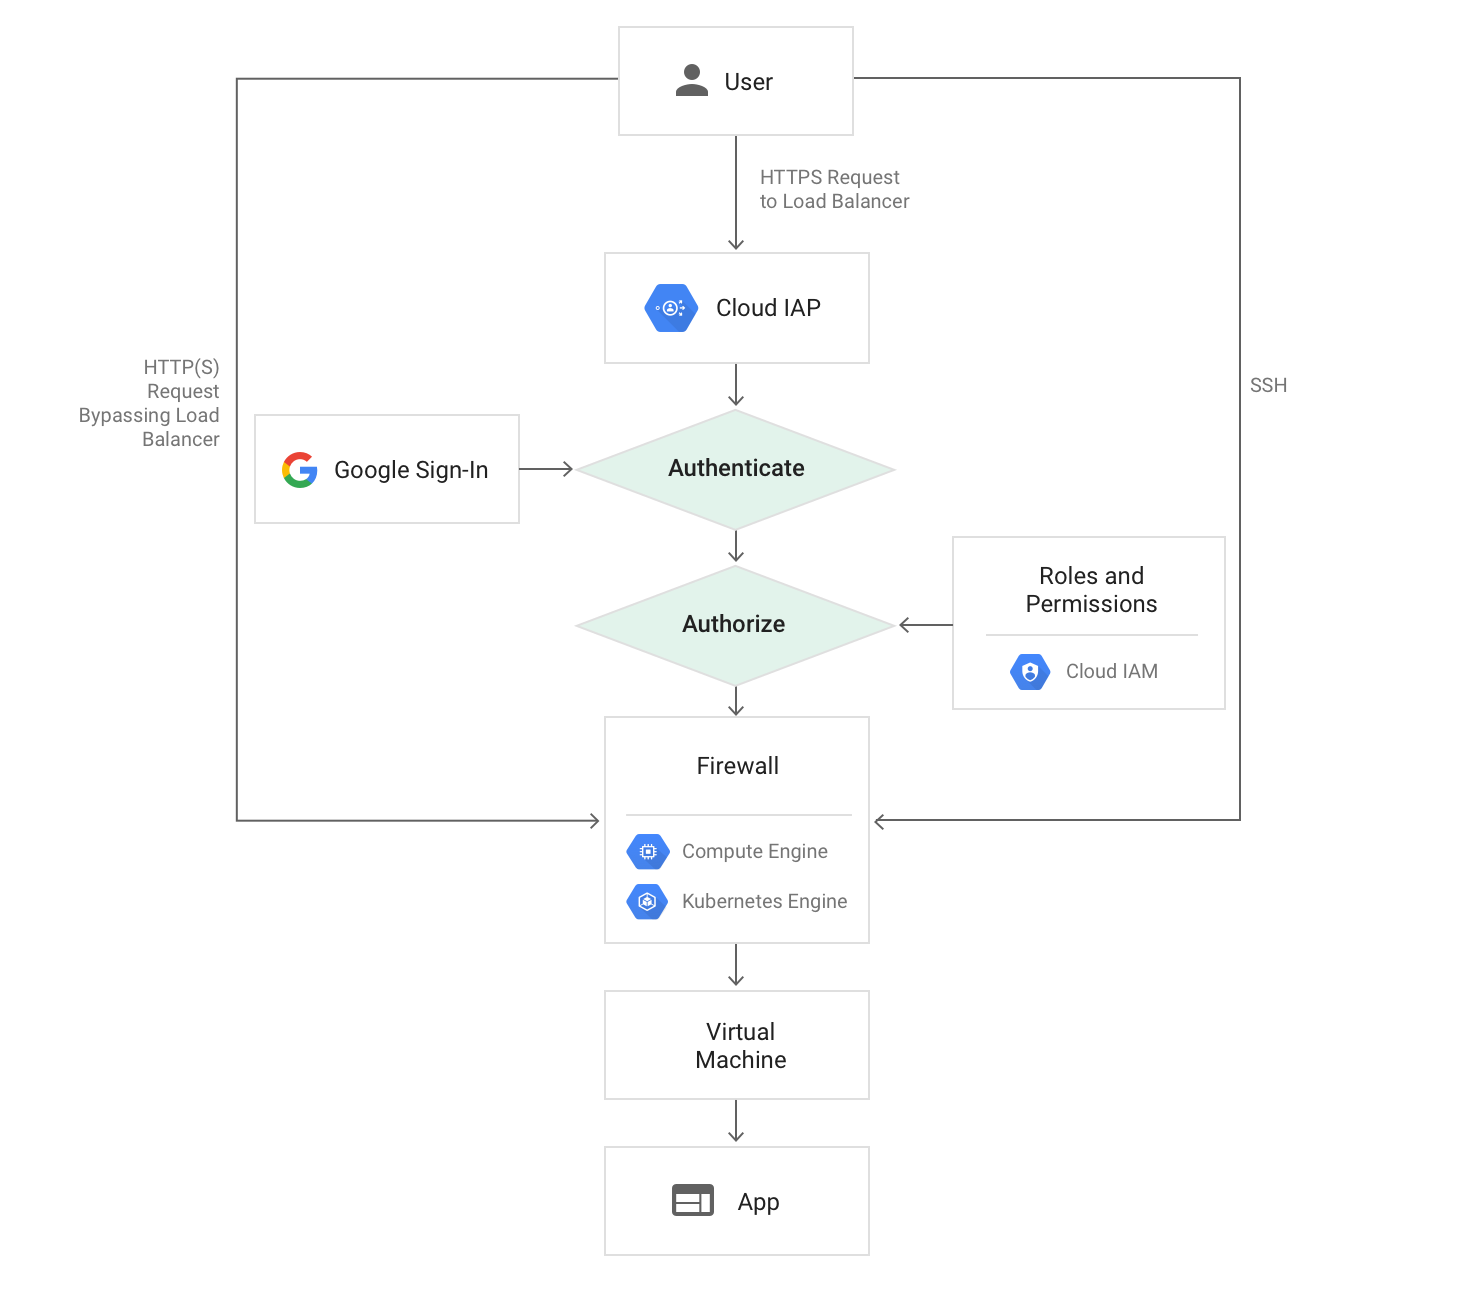 diagram of request path to Compute Engine and Kubernetes Engine when using Cloud IAP